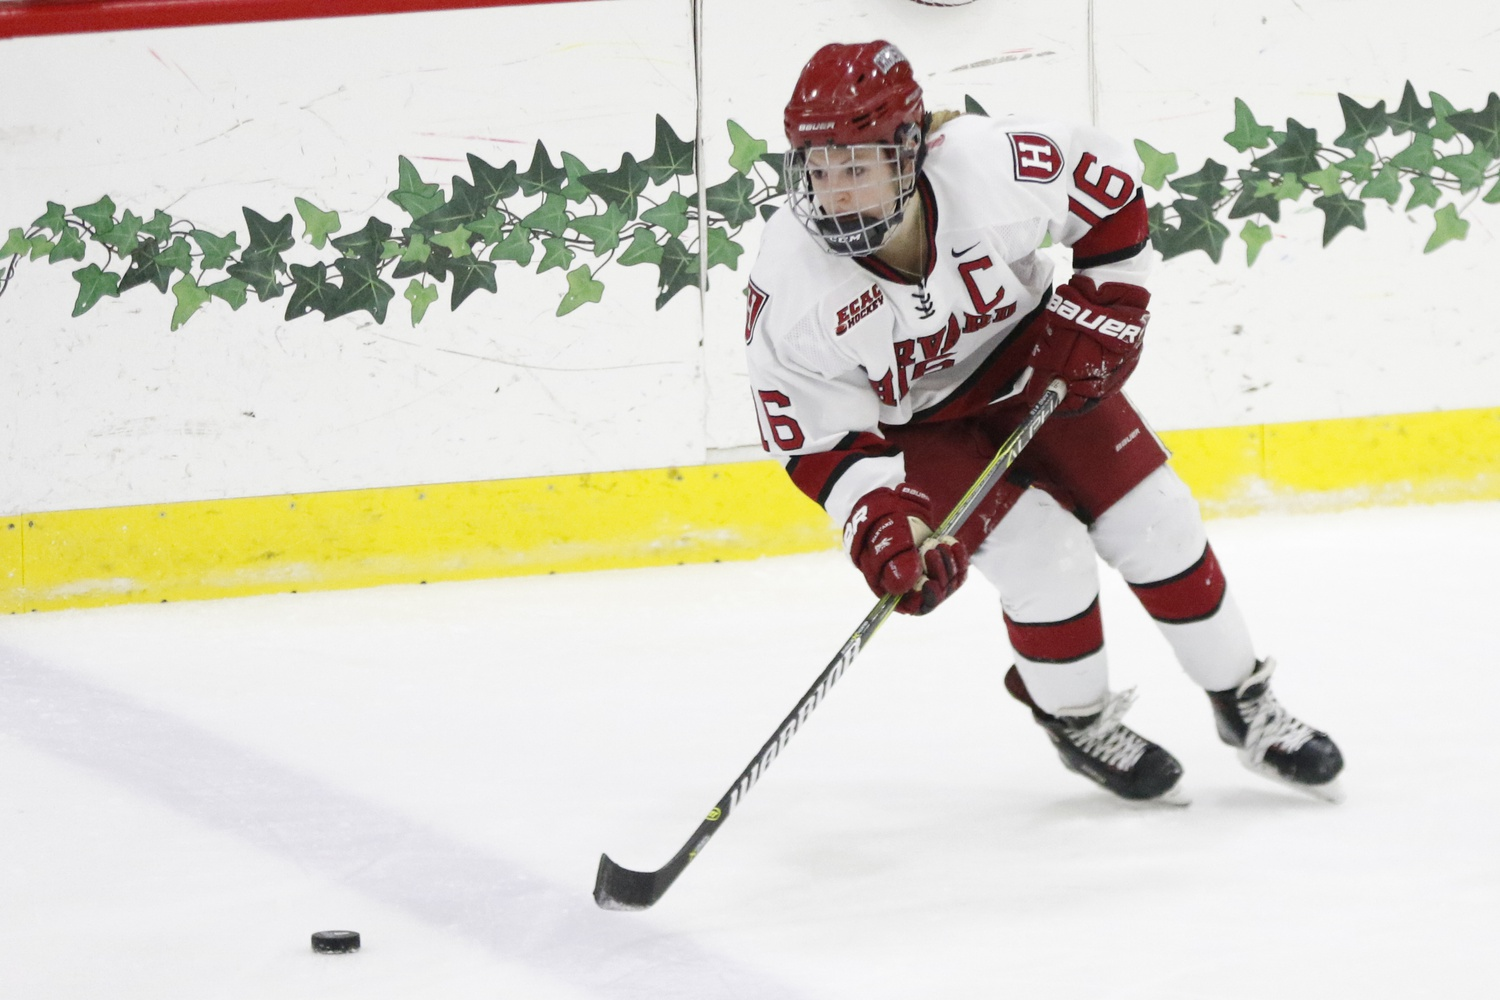 The Crimson will travel to upstate New York this weekend to face Colgate in the ECAC playoffs.